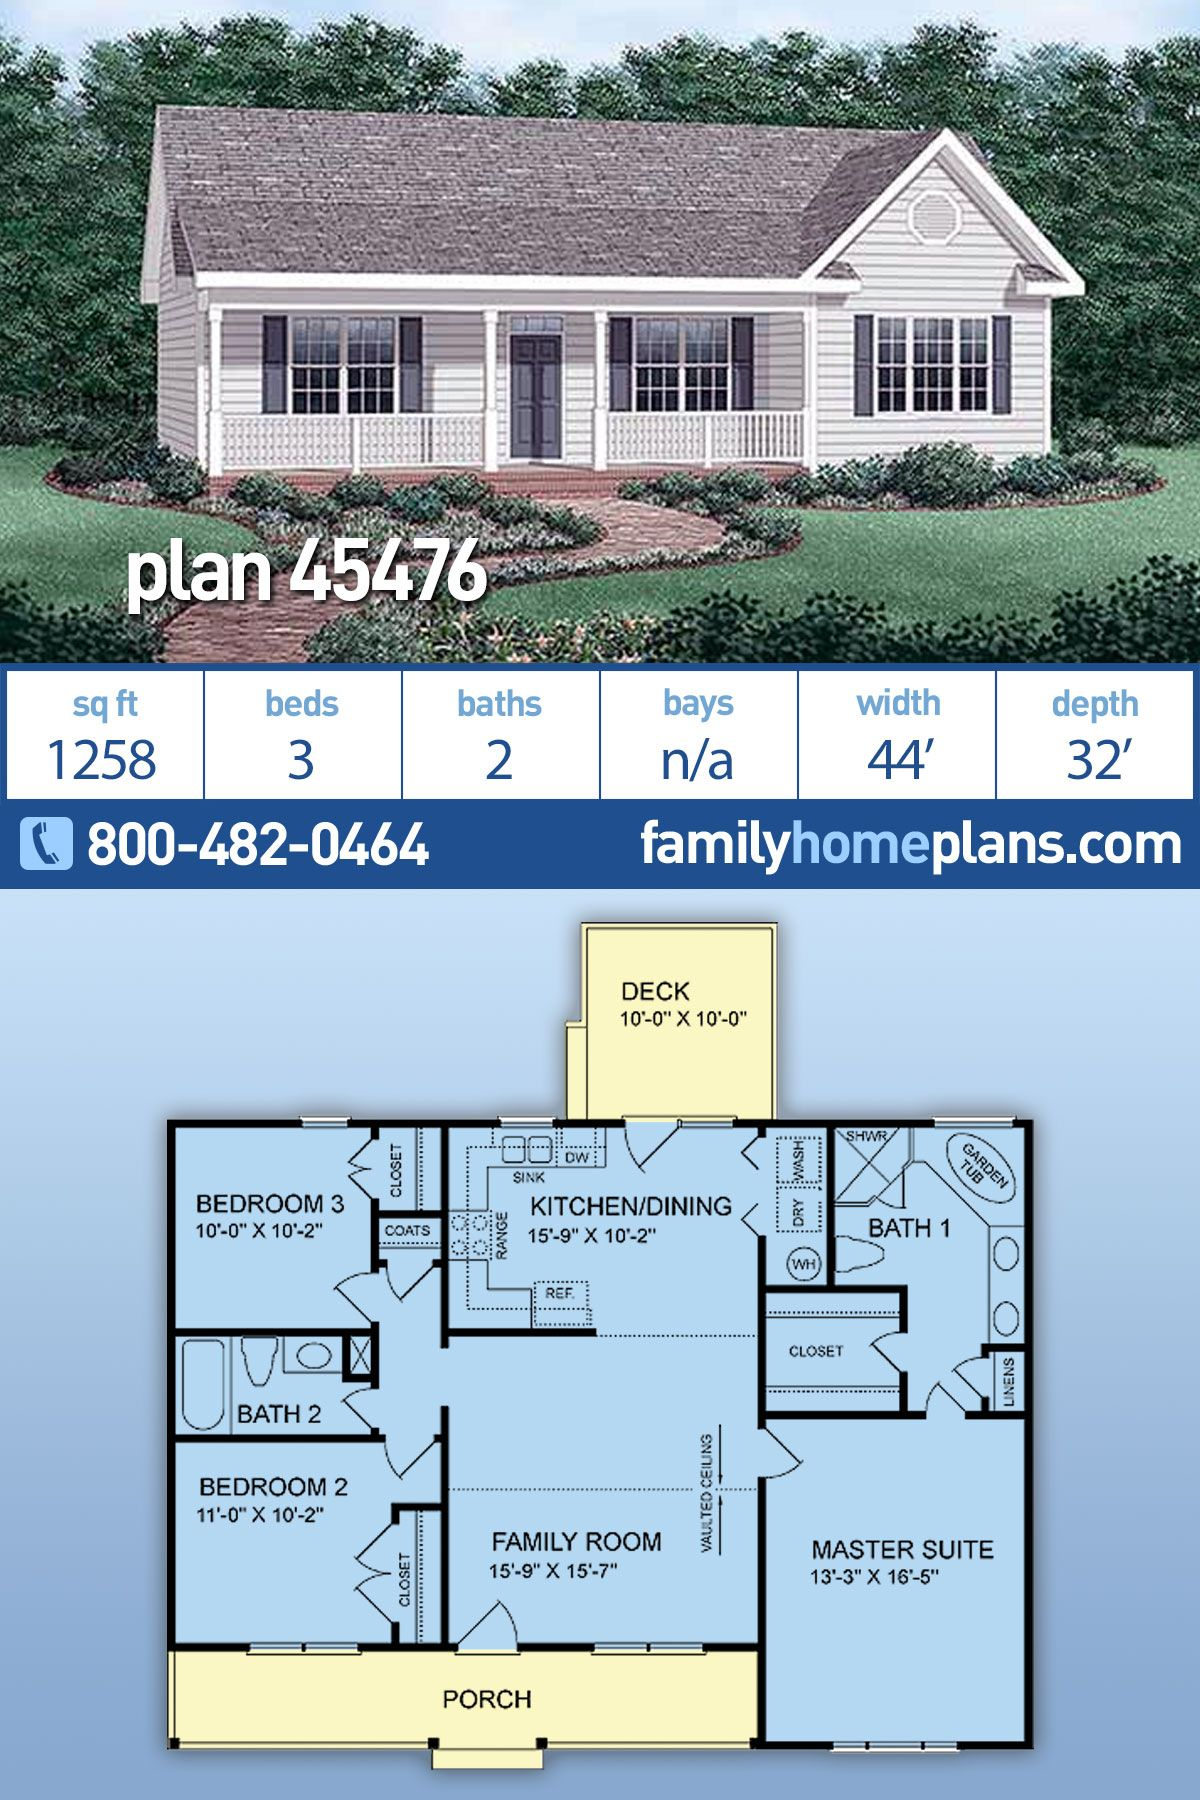 Traditional Style House Plan 45476 With 3 Bed 2 Bath Ranch House Plans Ranch Style House Plans Building Plans House